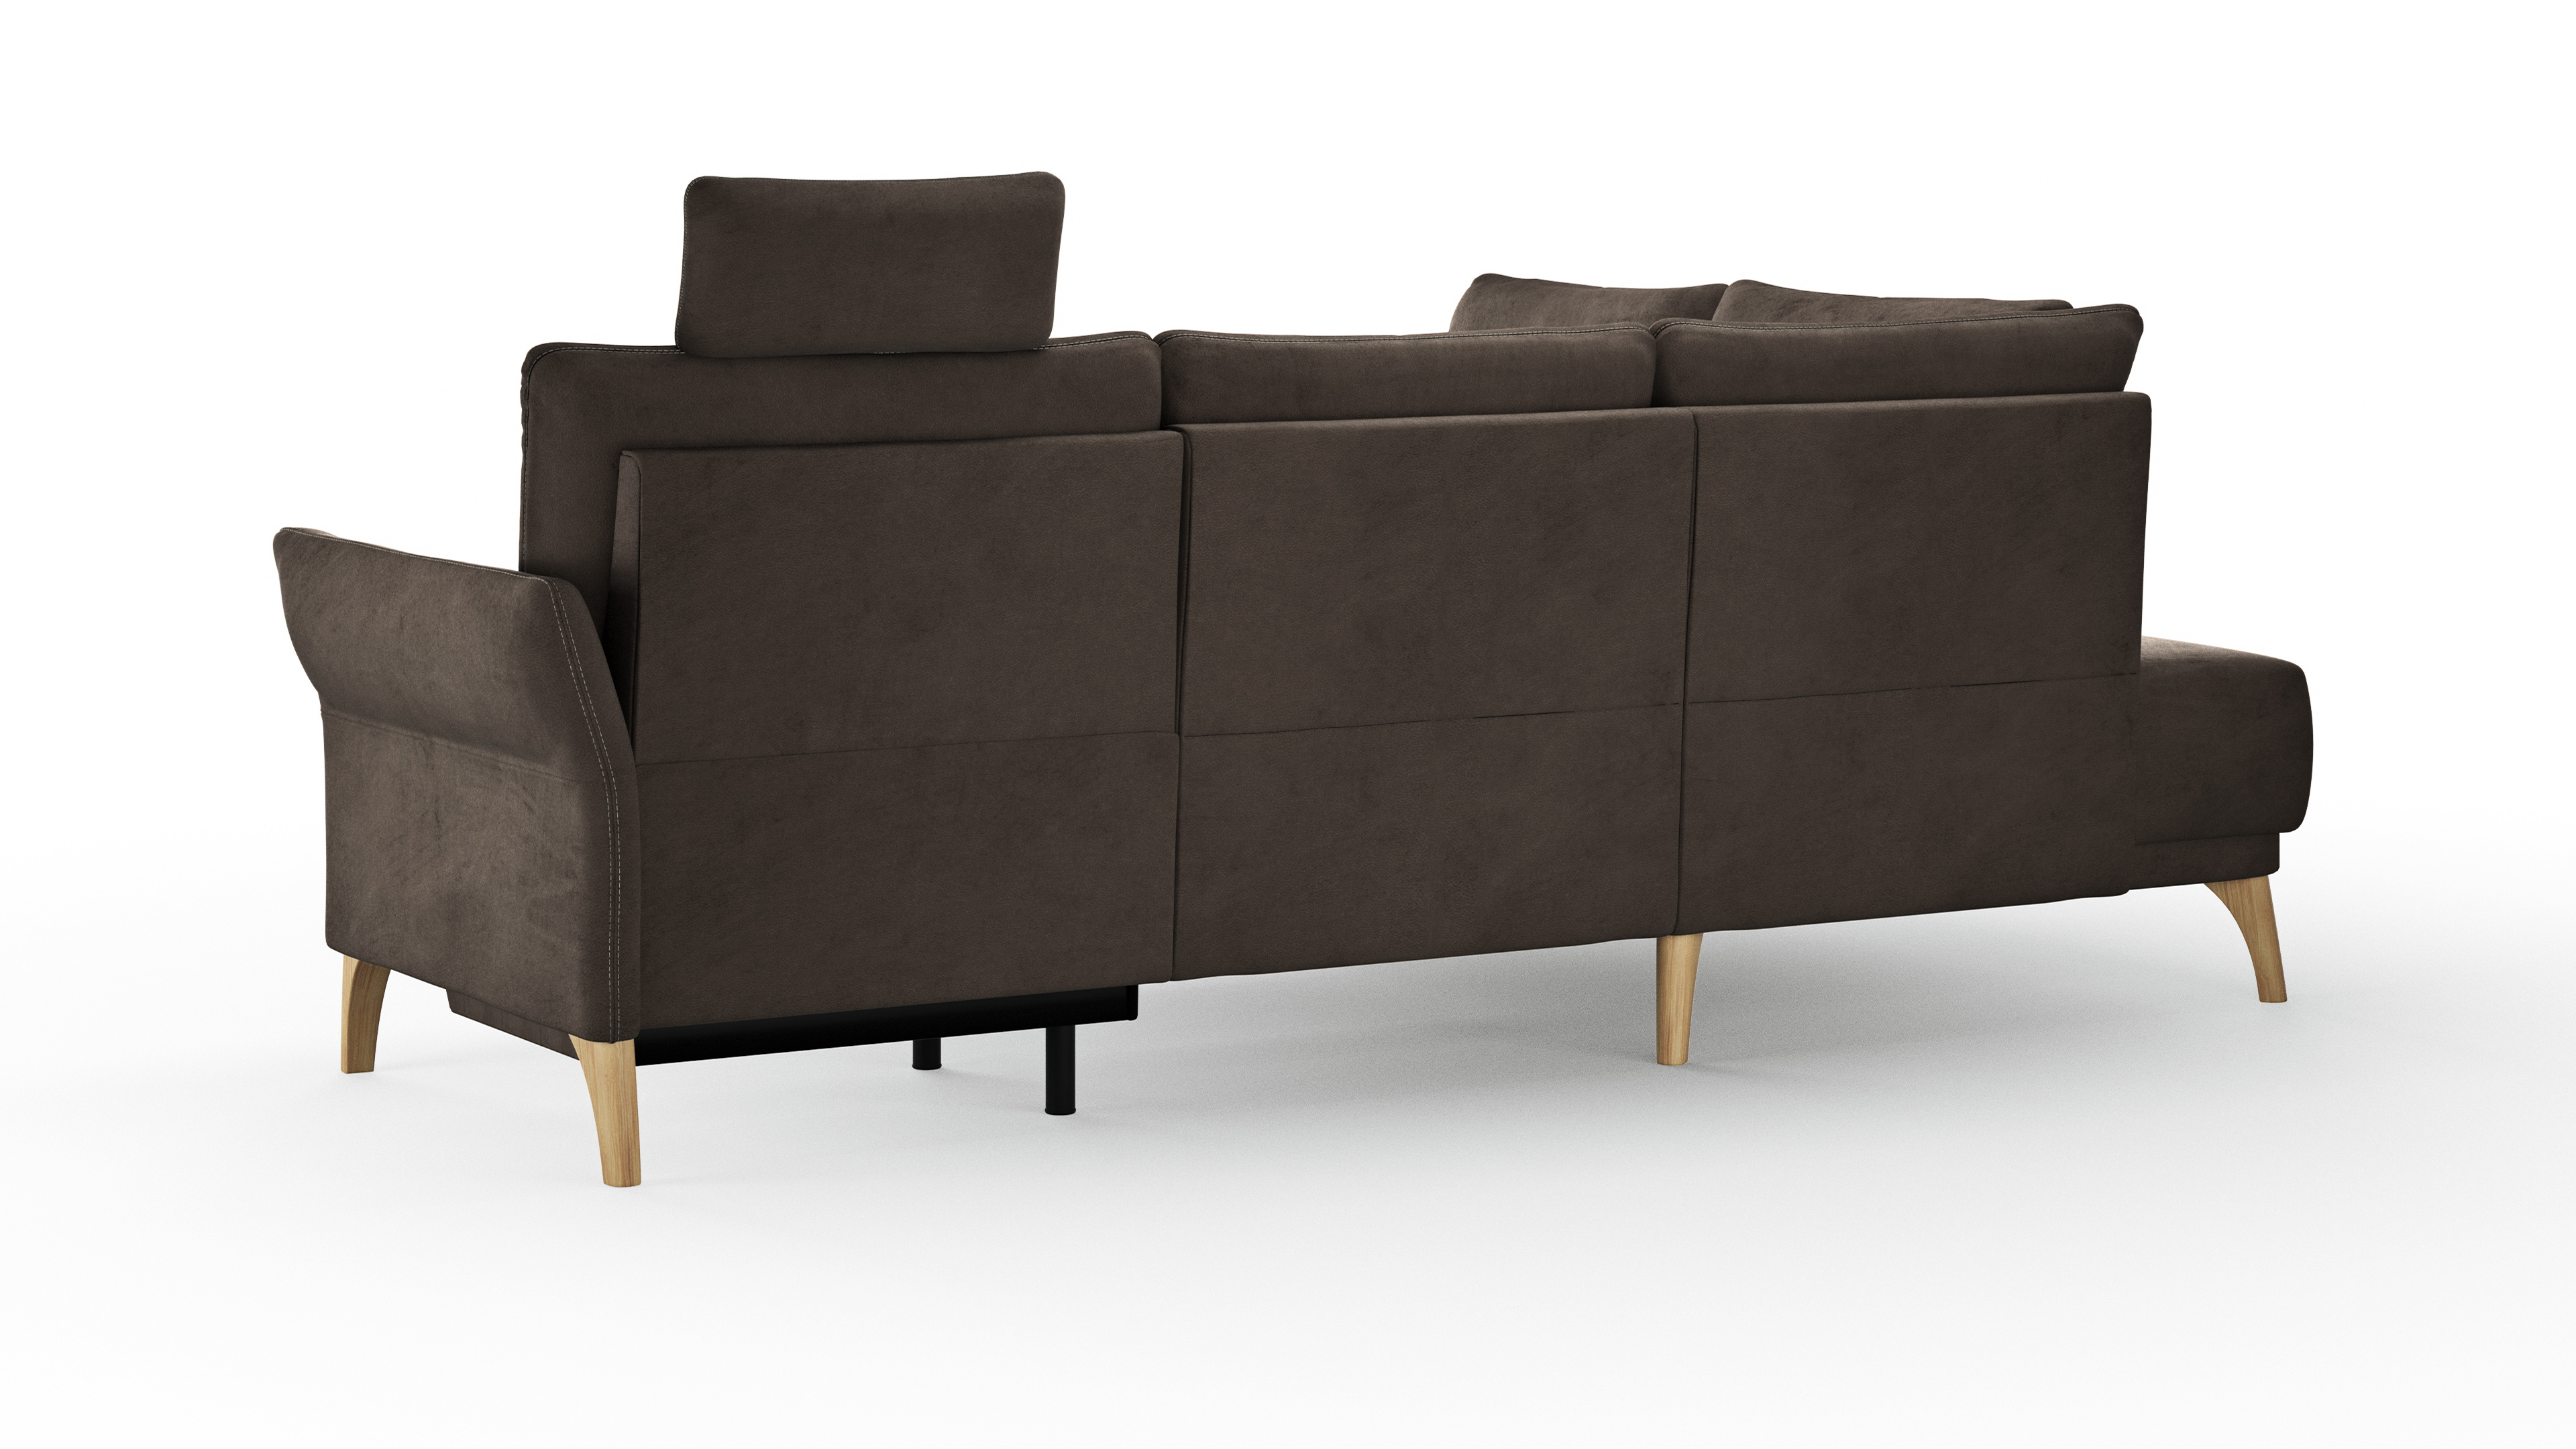 Global Comfort Ecksofa Rosario freisteller 3 102541 | Homepoet